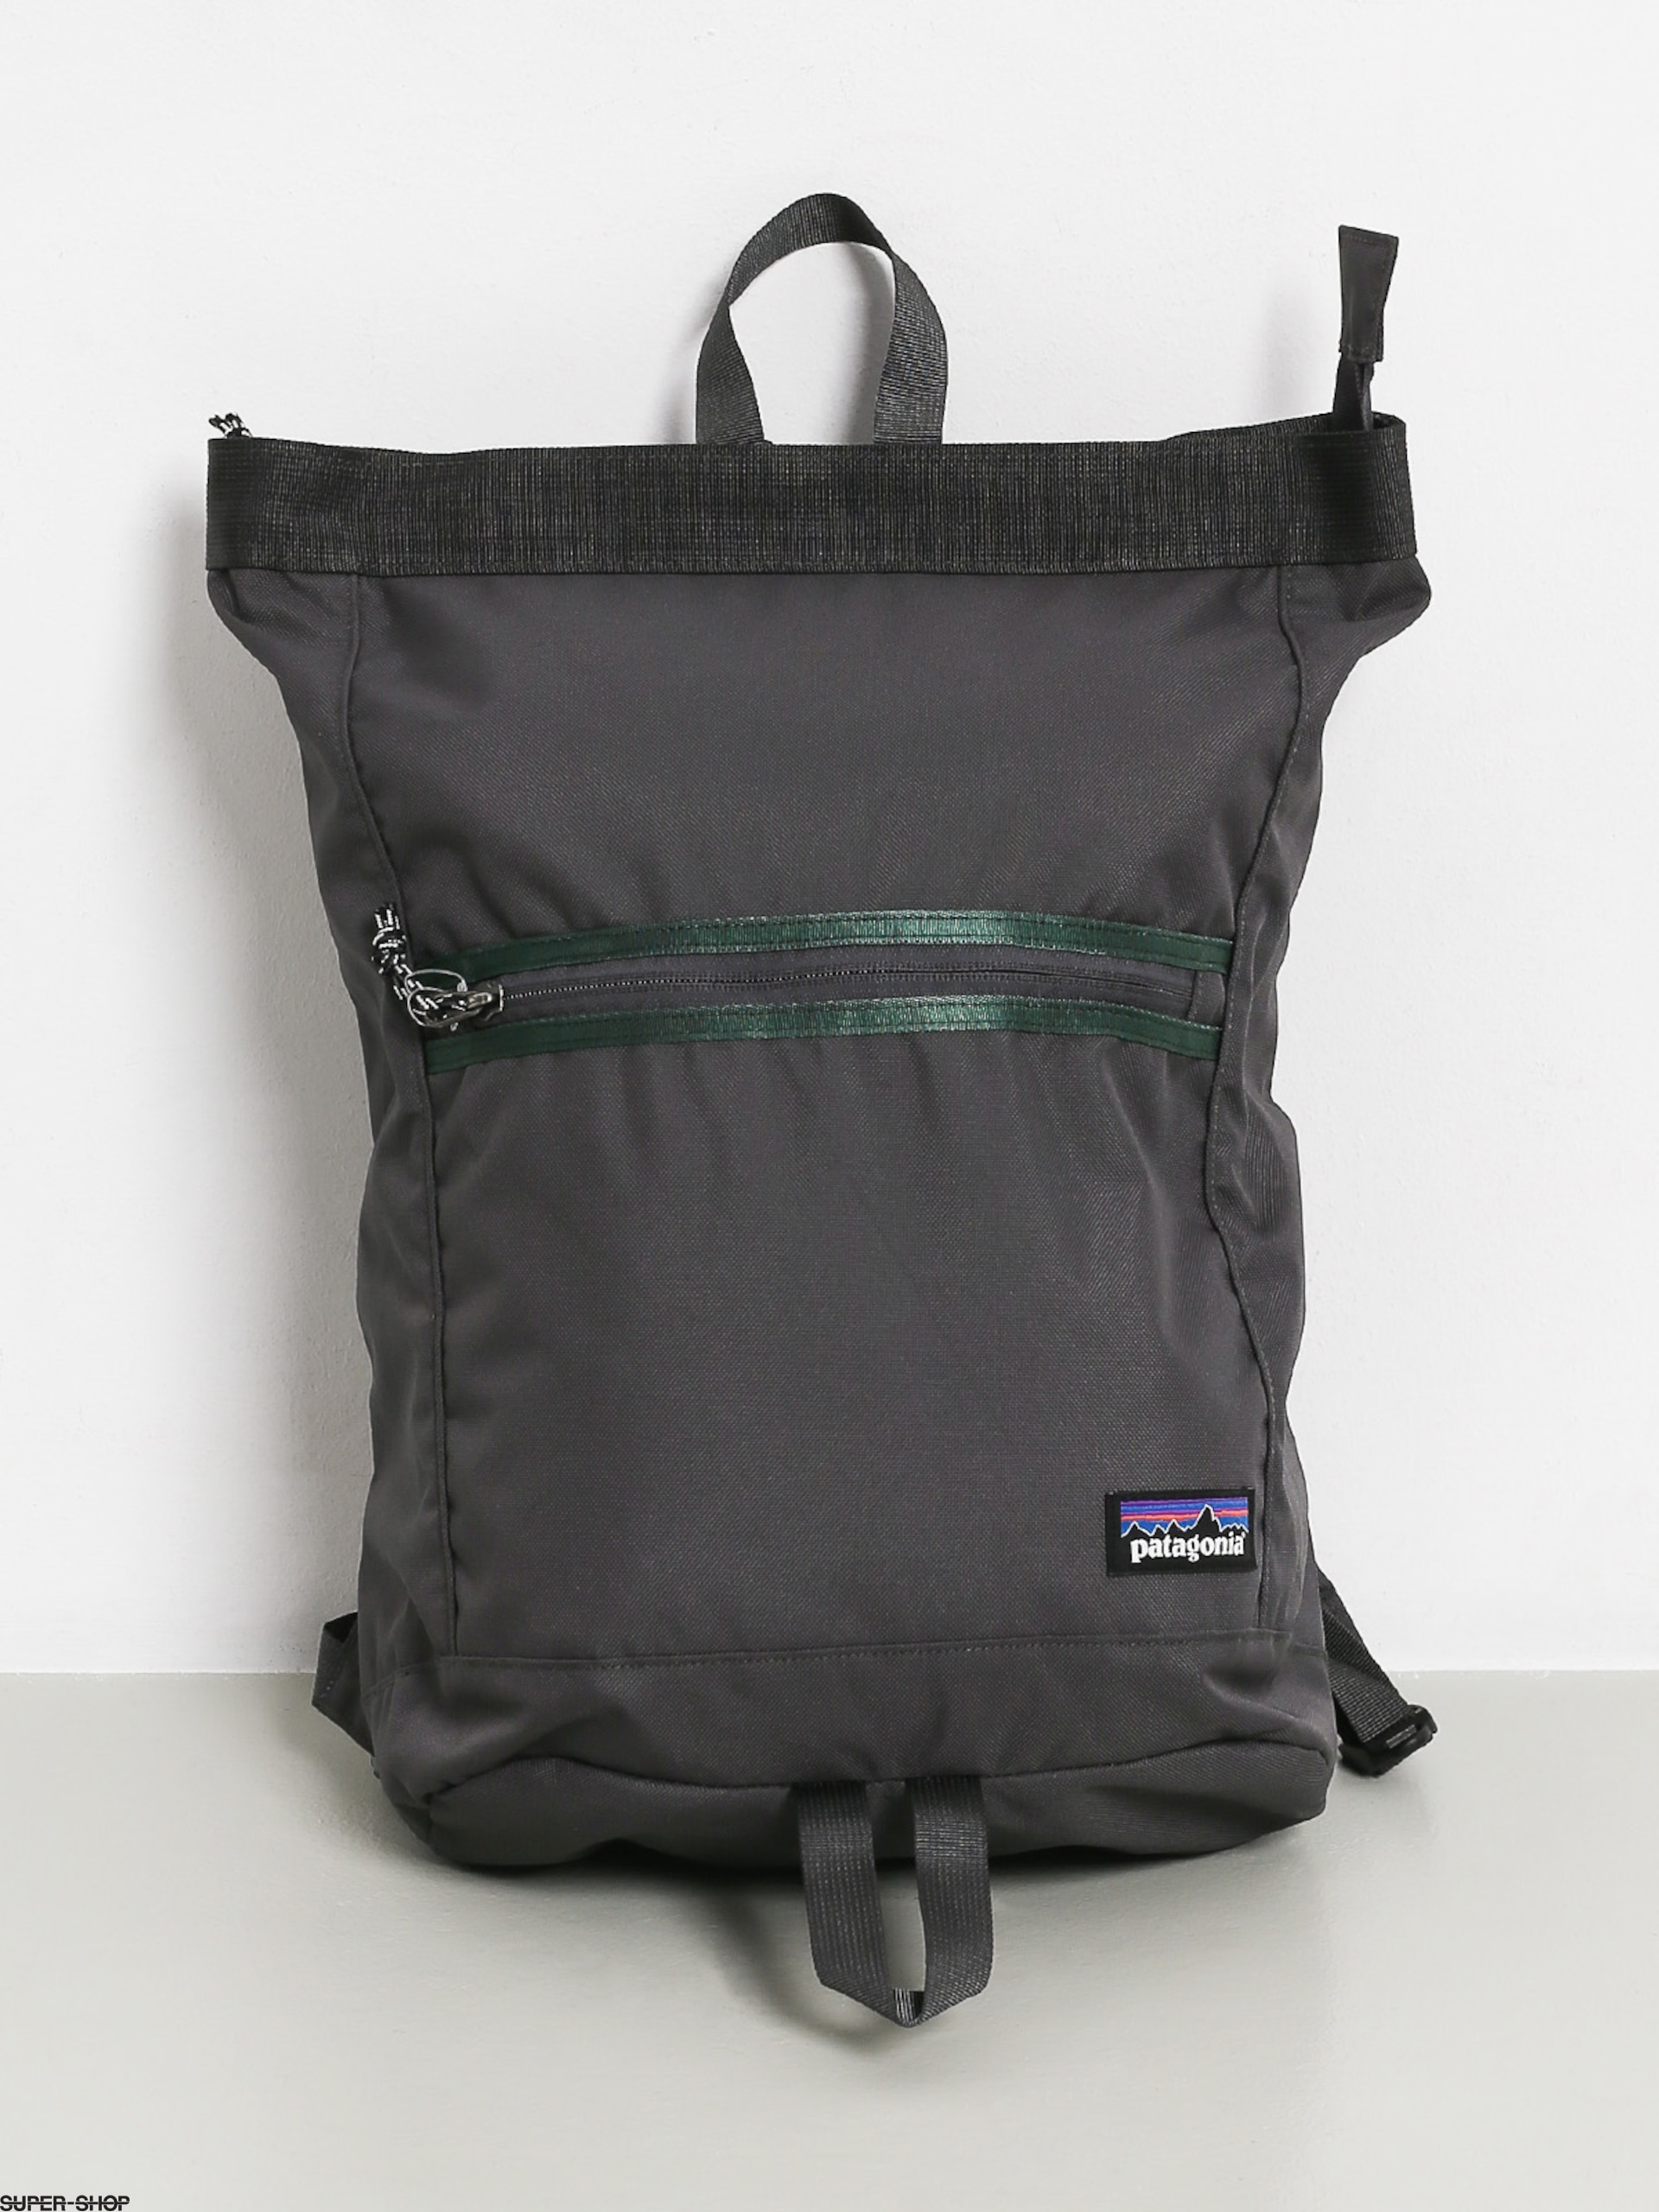 f481fdc52a550 1020571-w1920-patagonia-arbor-market-pack-15l-backpack-forge-grey.jpg